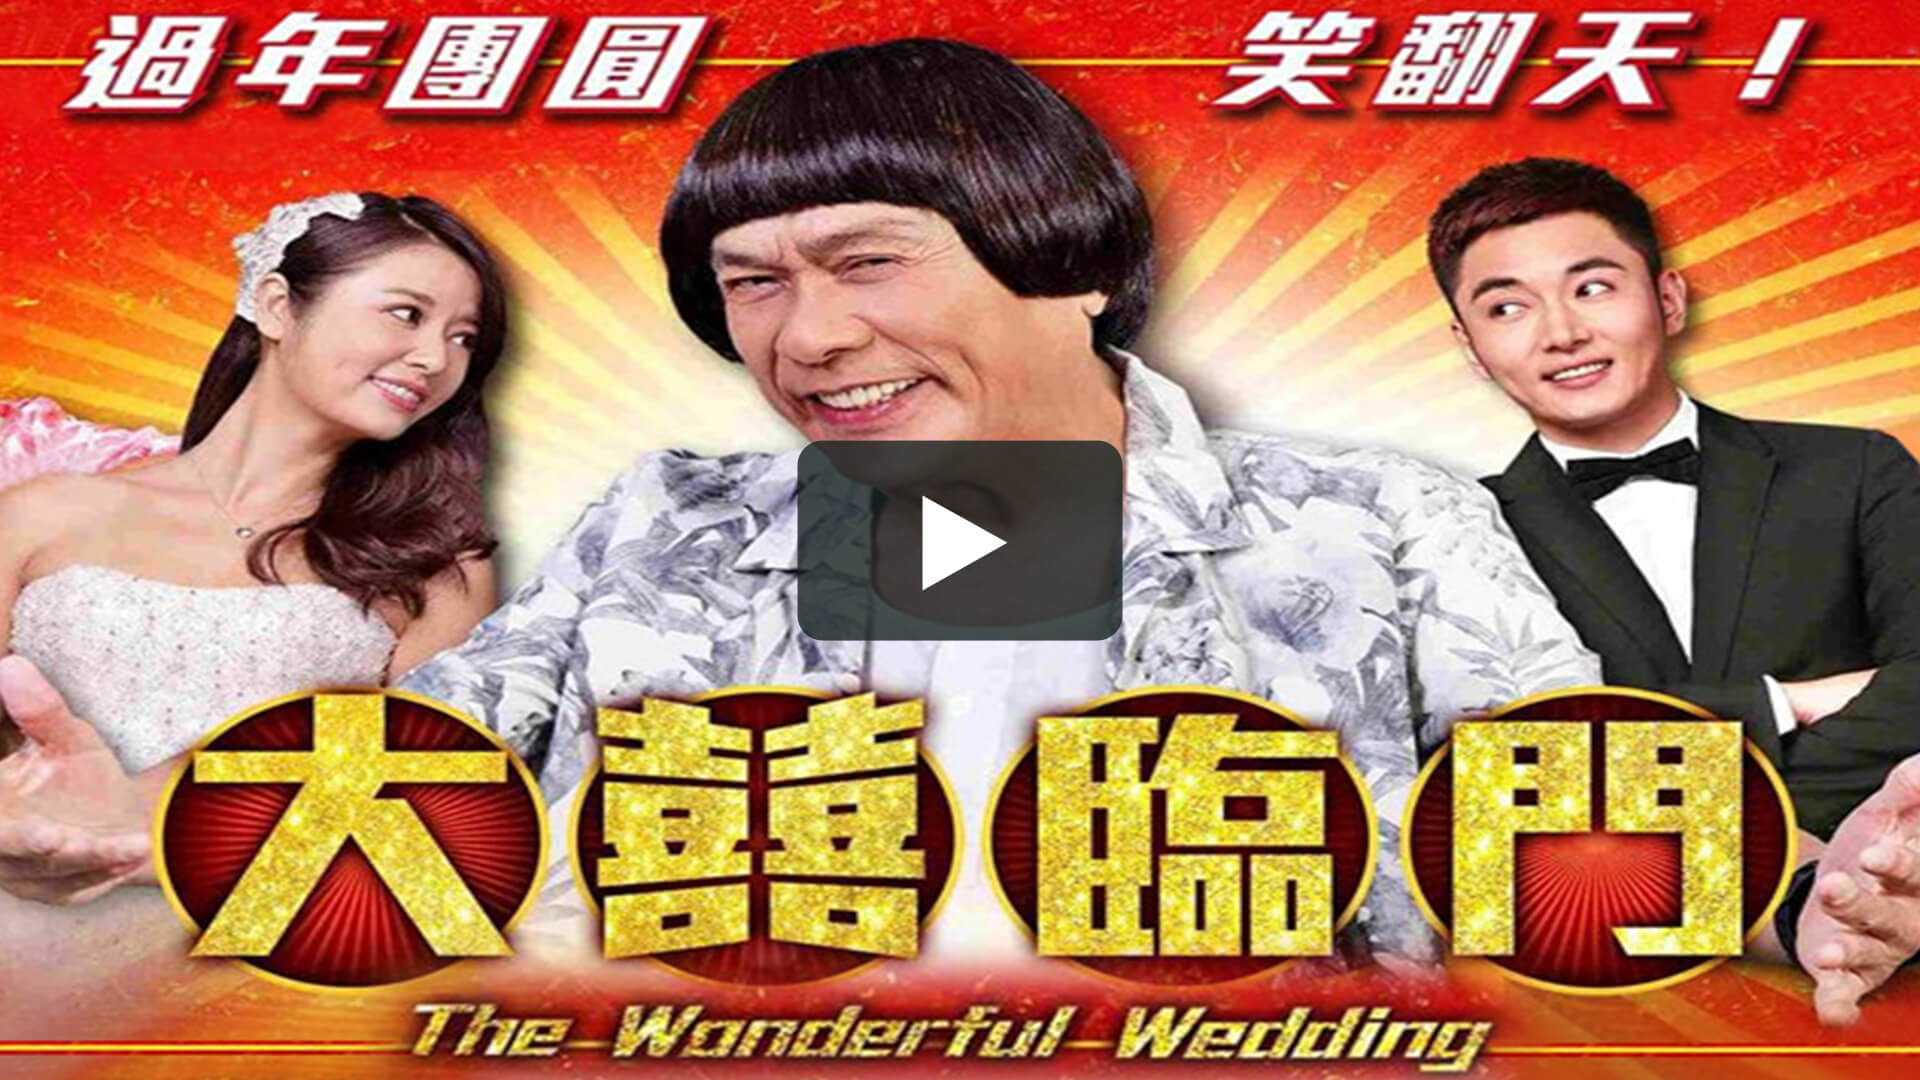 大囍臨門 The Wonderful Wedding